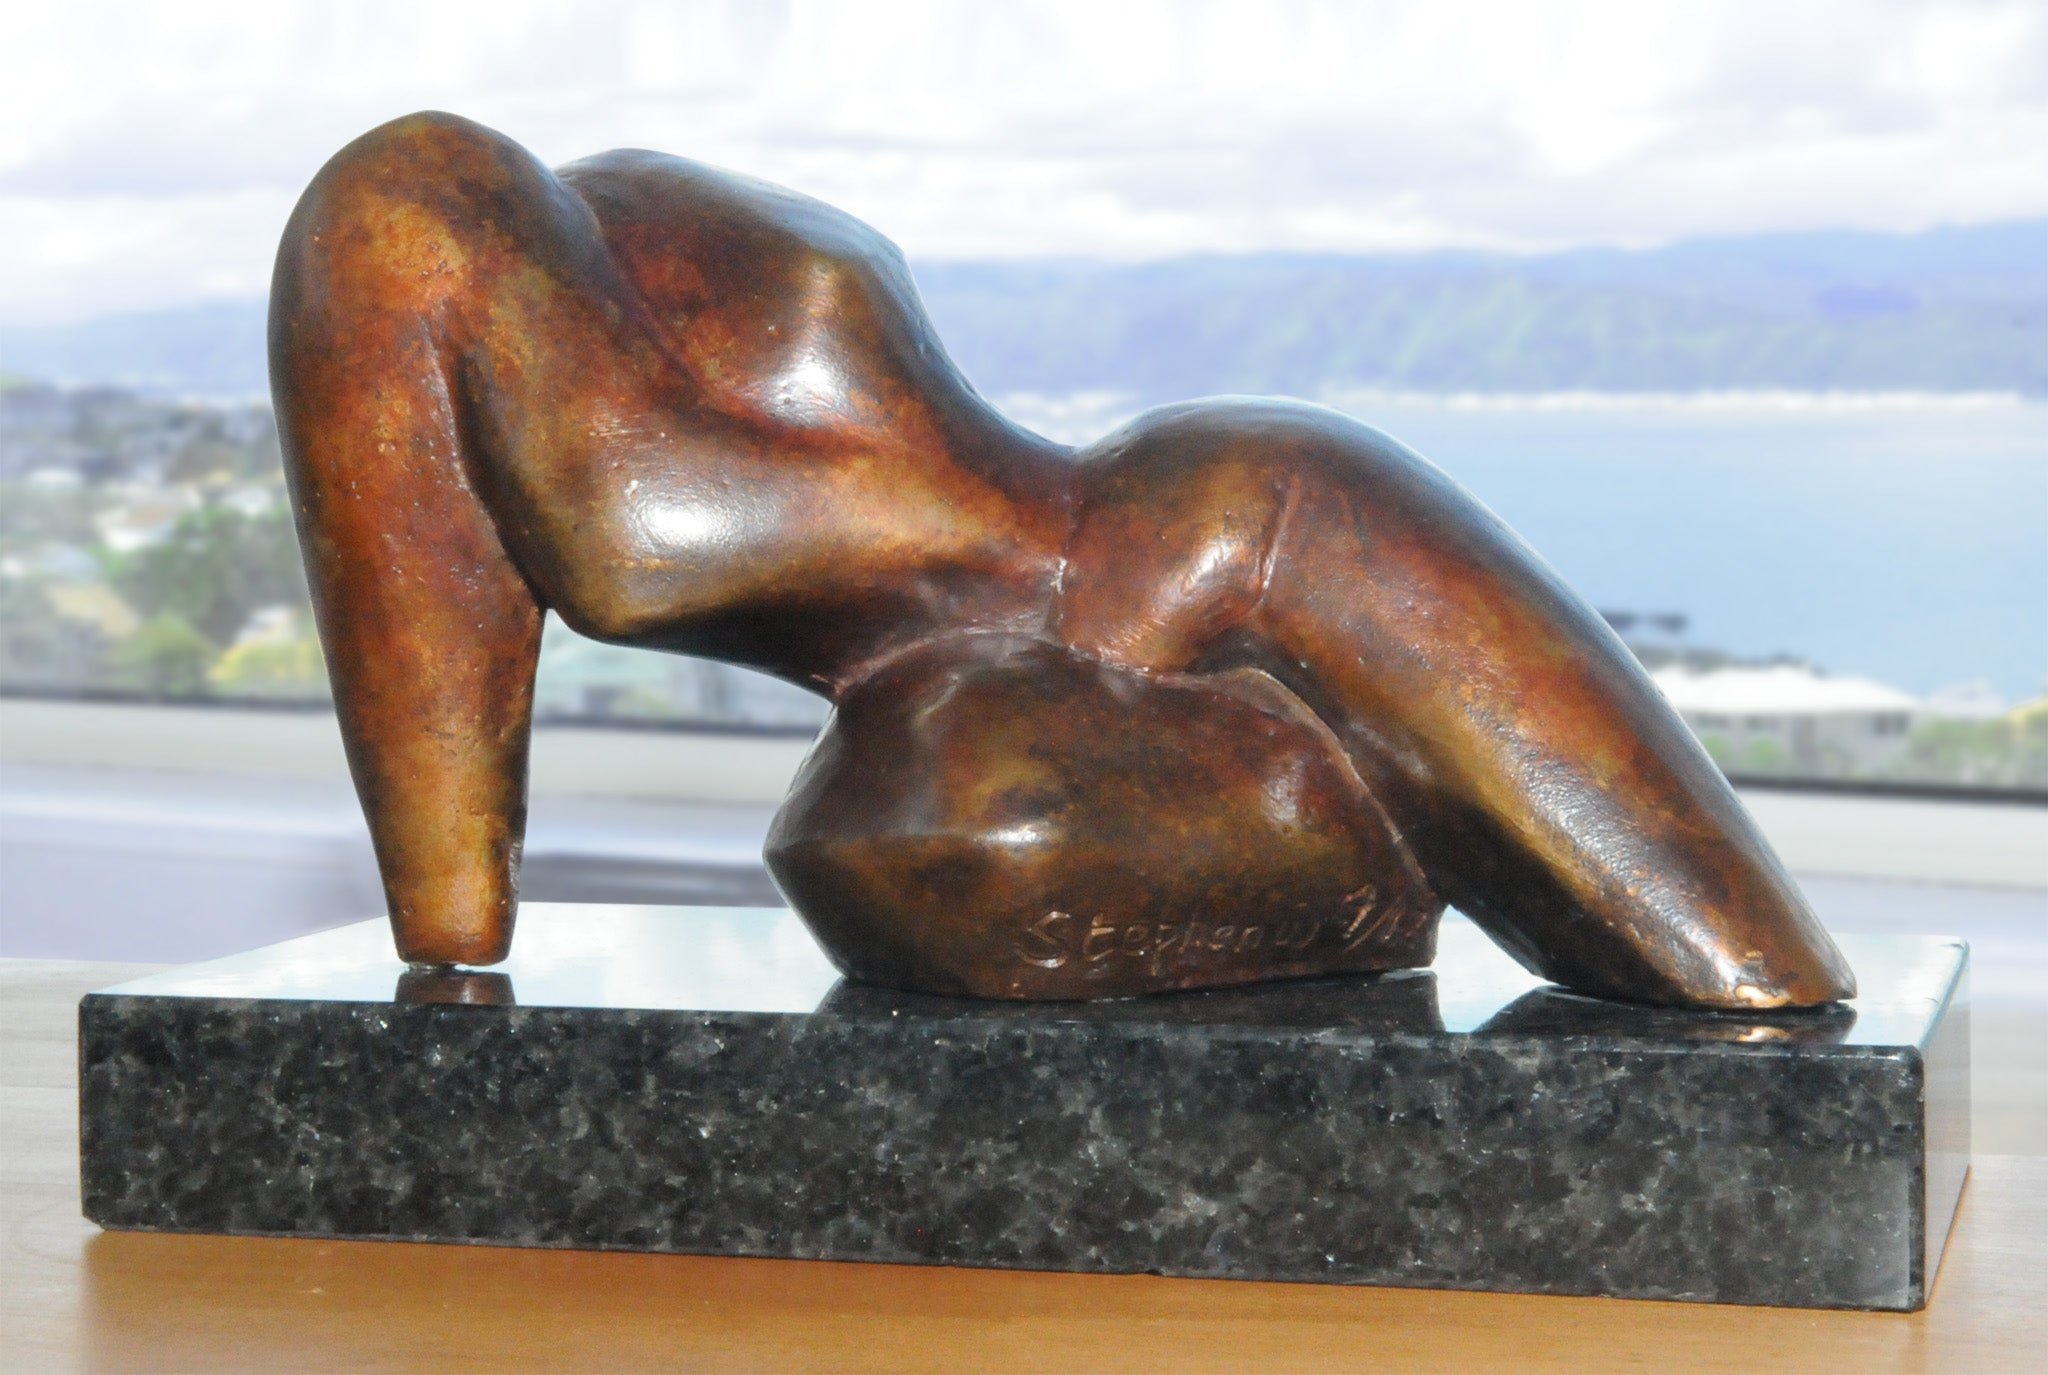 Reclining abstract figurative bronze sculpture by Stephen Williams | New Zealand.